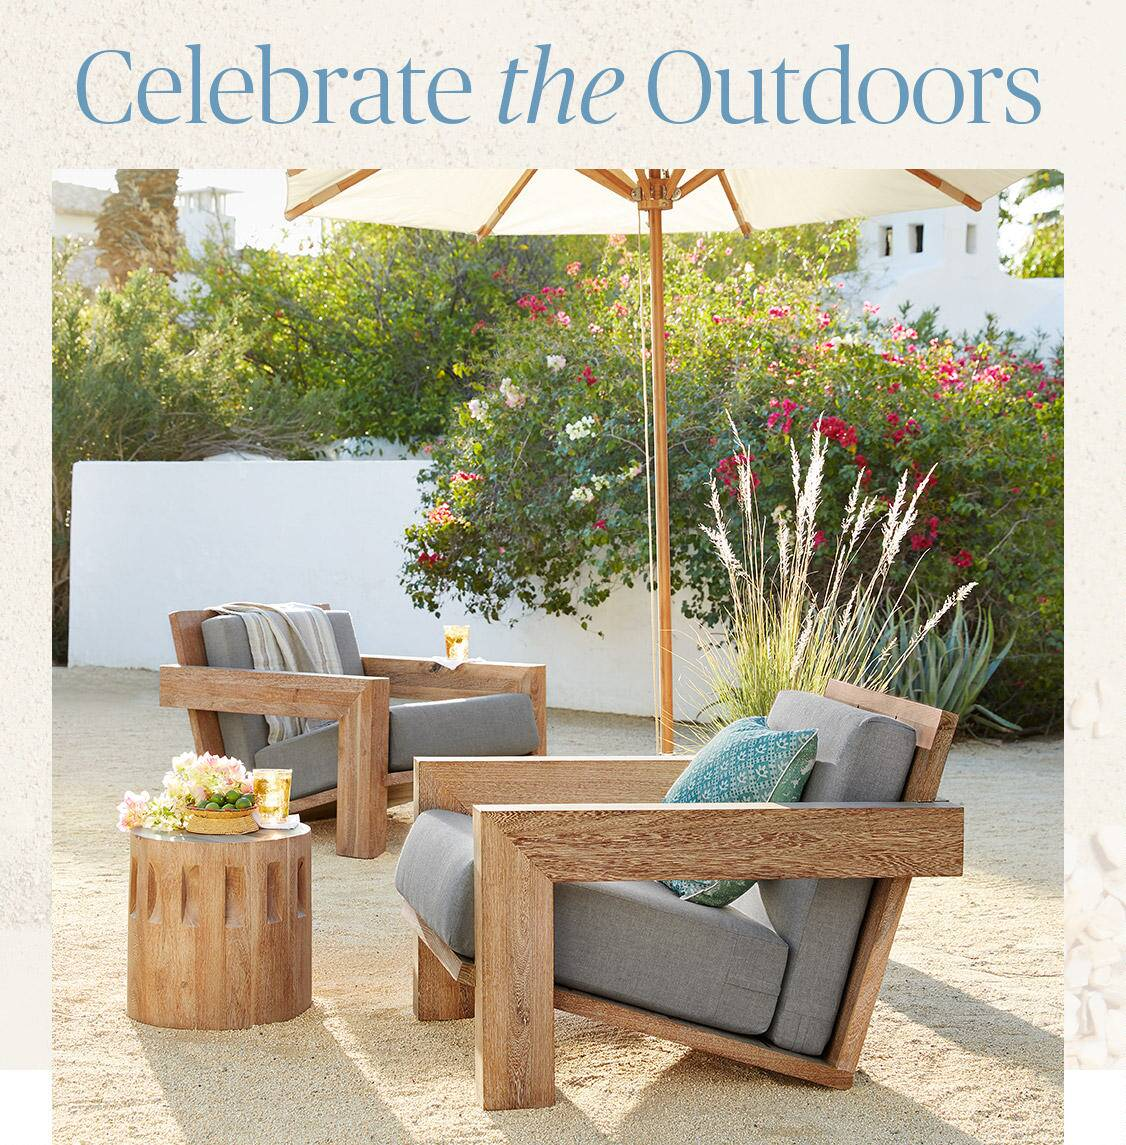 Celebrate the Outdoors